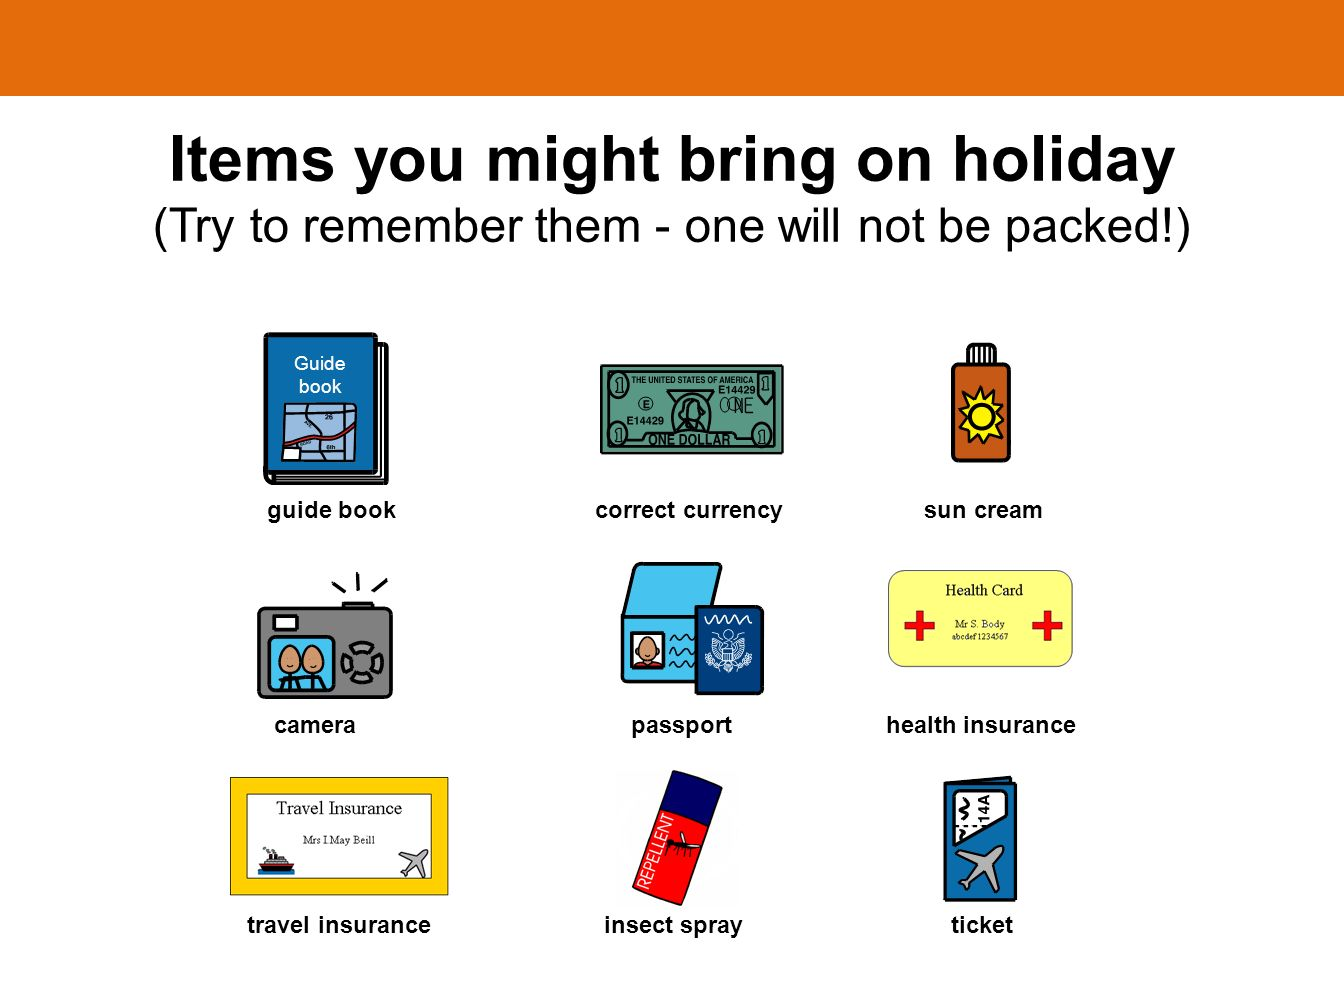 Items you might bring on holiday (Try to remember them - one will not be packed!) guide book correct currency sun cream Guide book camera passport health insurance travel insurance insect spray ticket